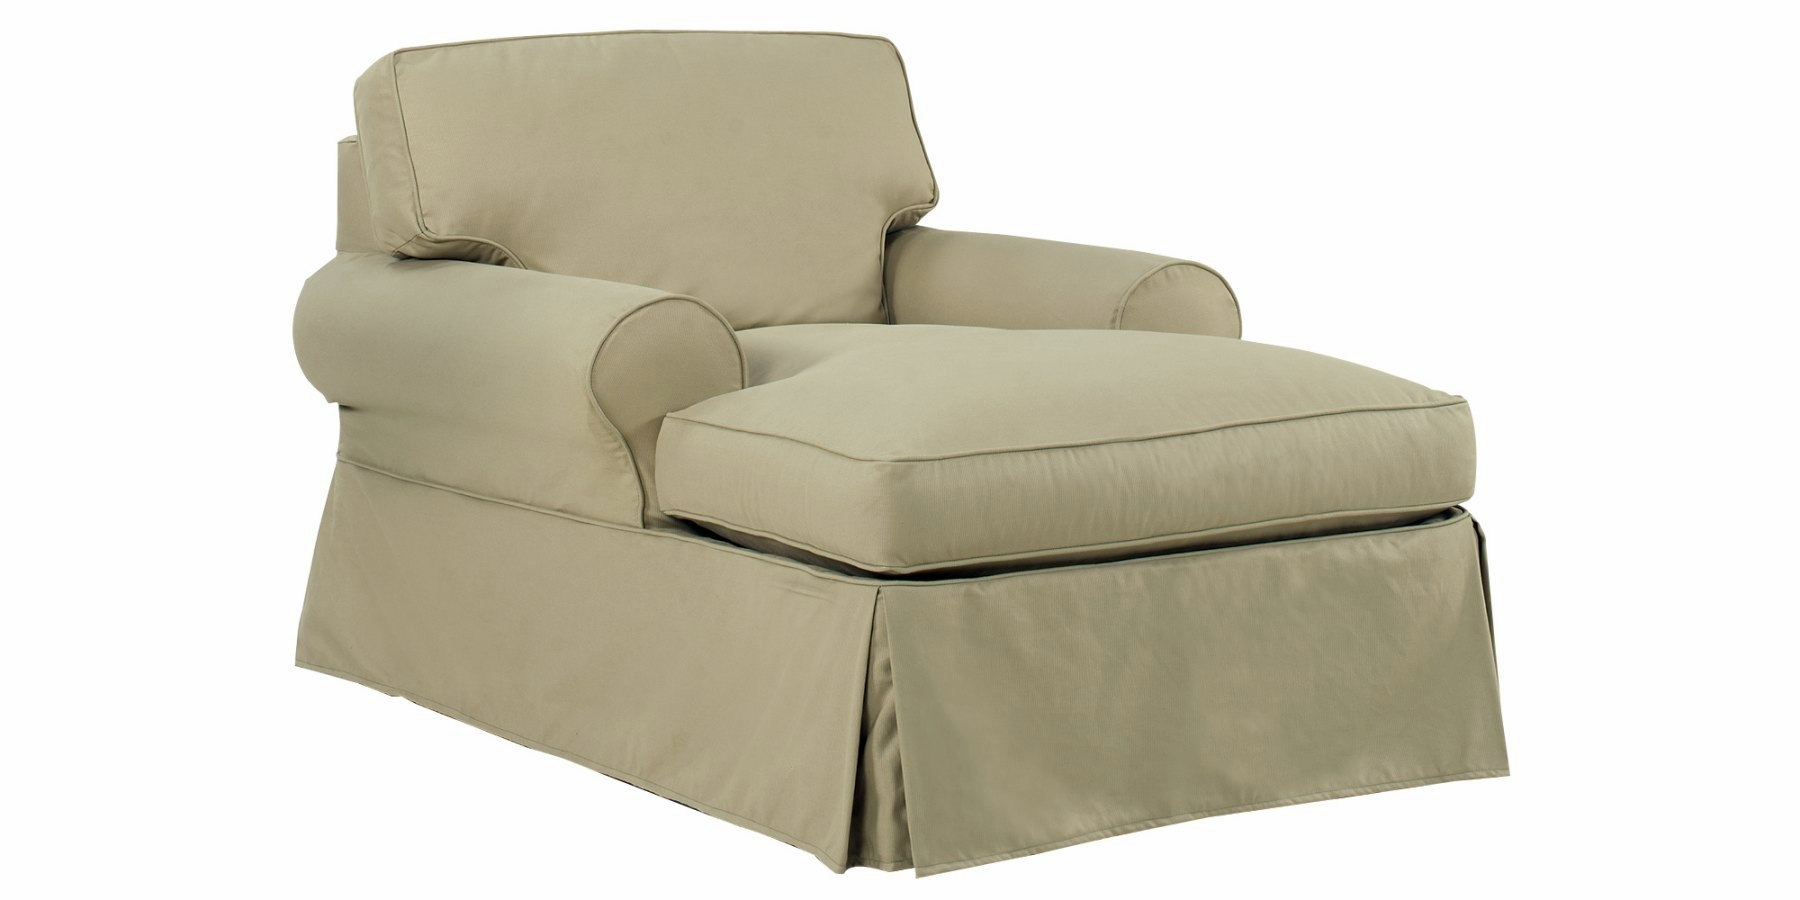 Chloe Slipcovered Chaise Lounge Chair  sc 1 st  Club Furniture : armchair and chaise lounge - Sectionals, Sofas & Couches